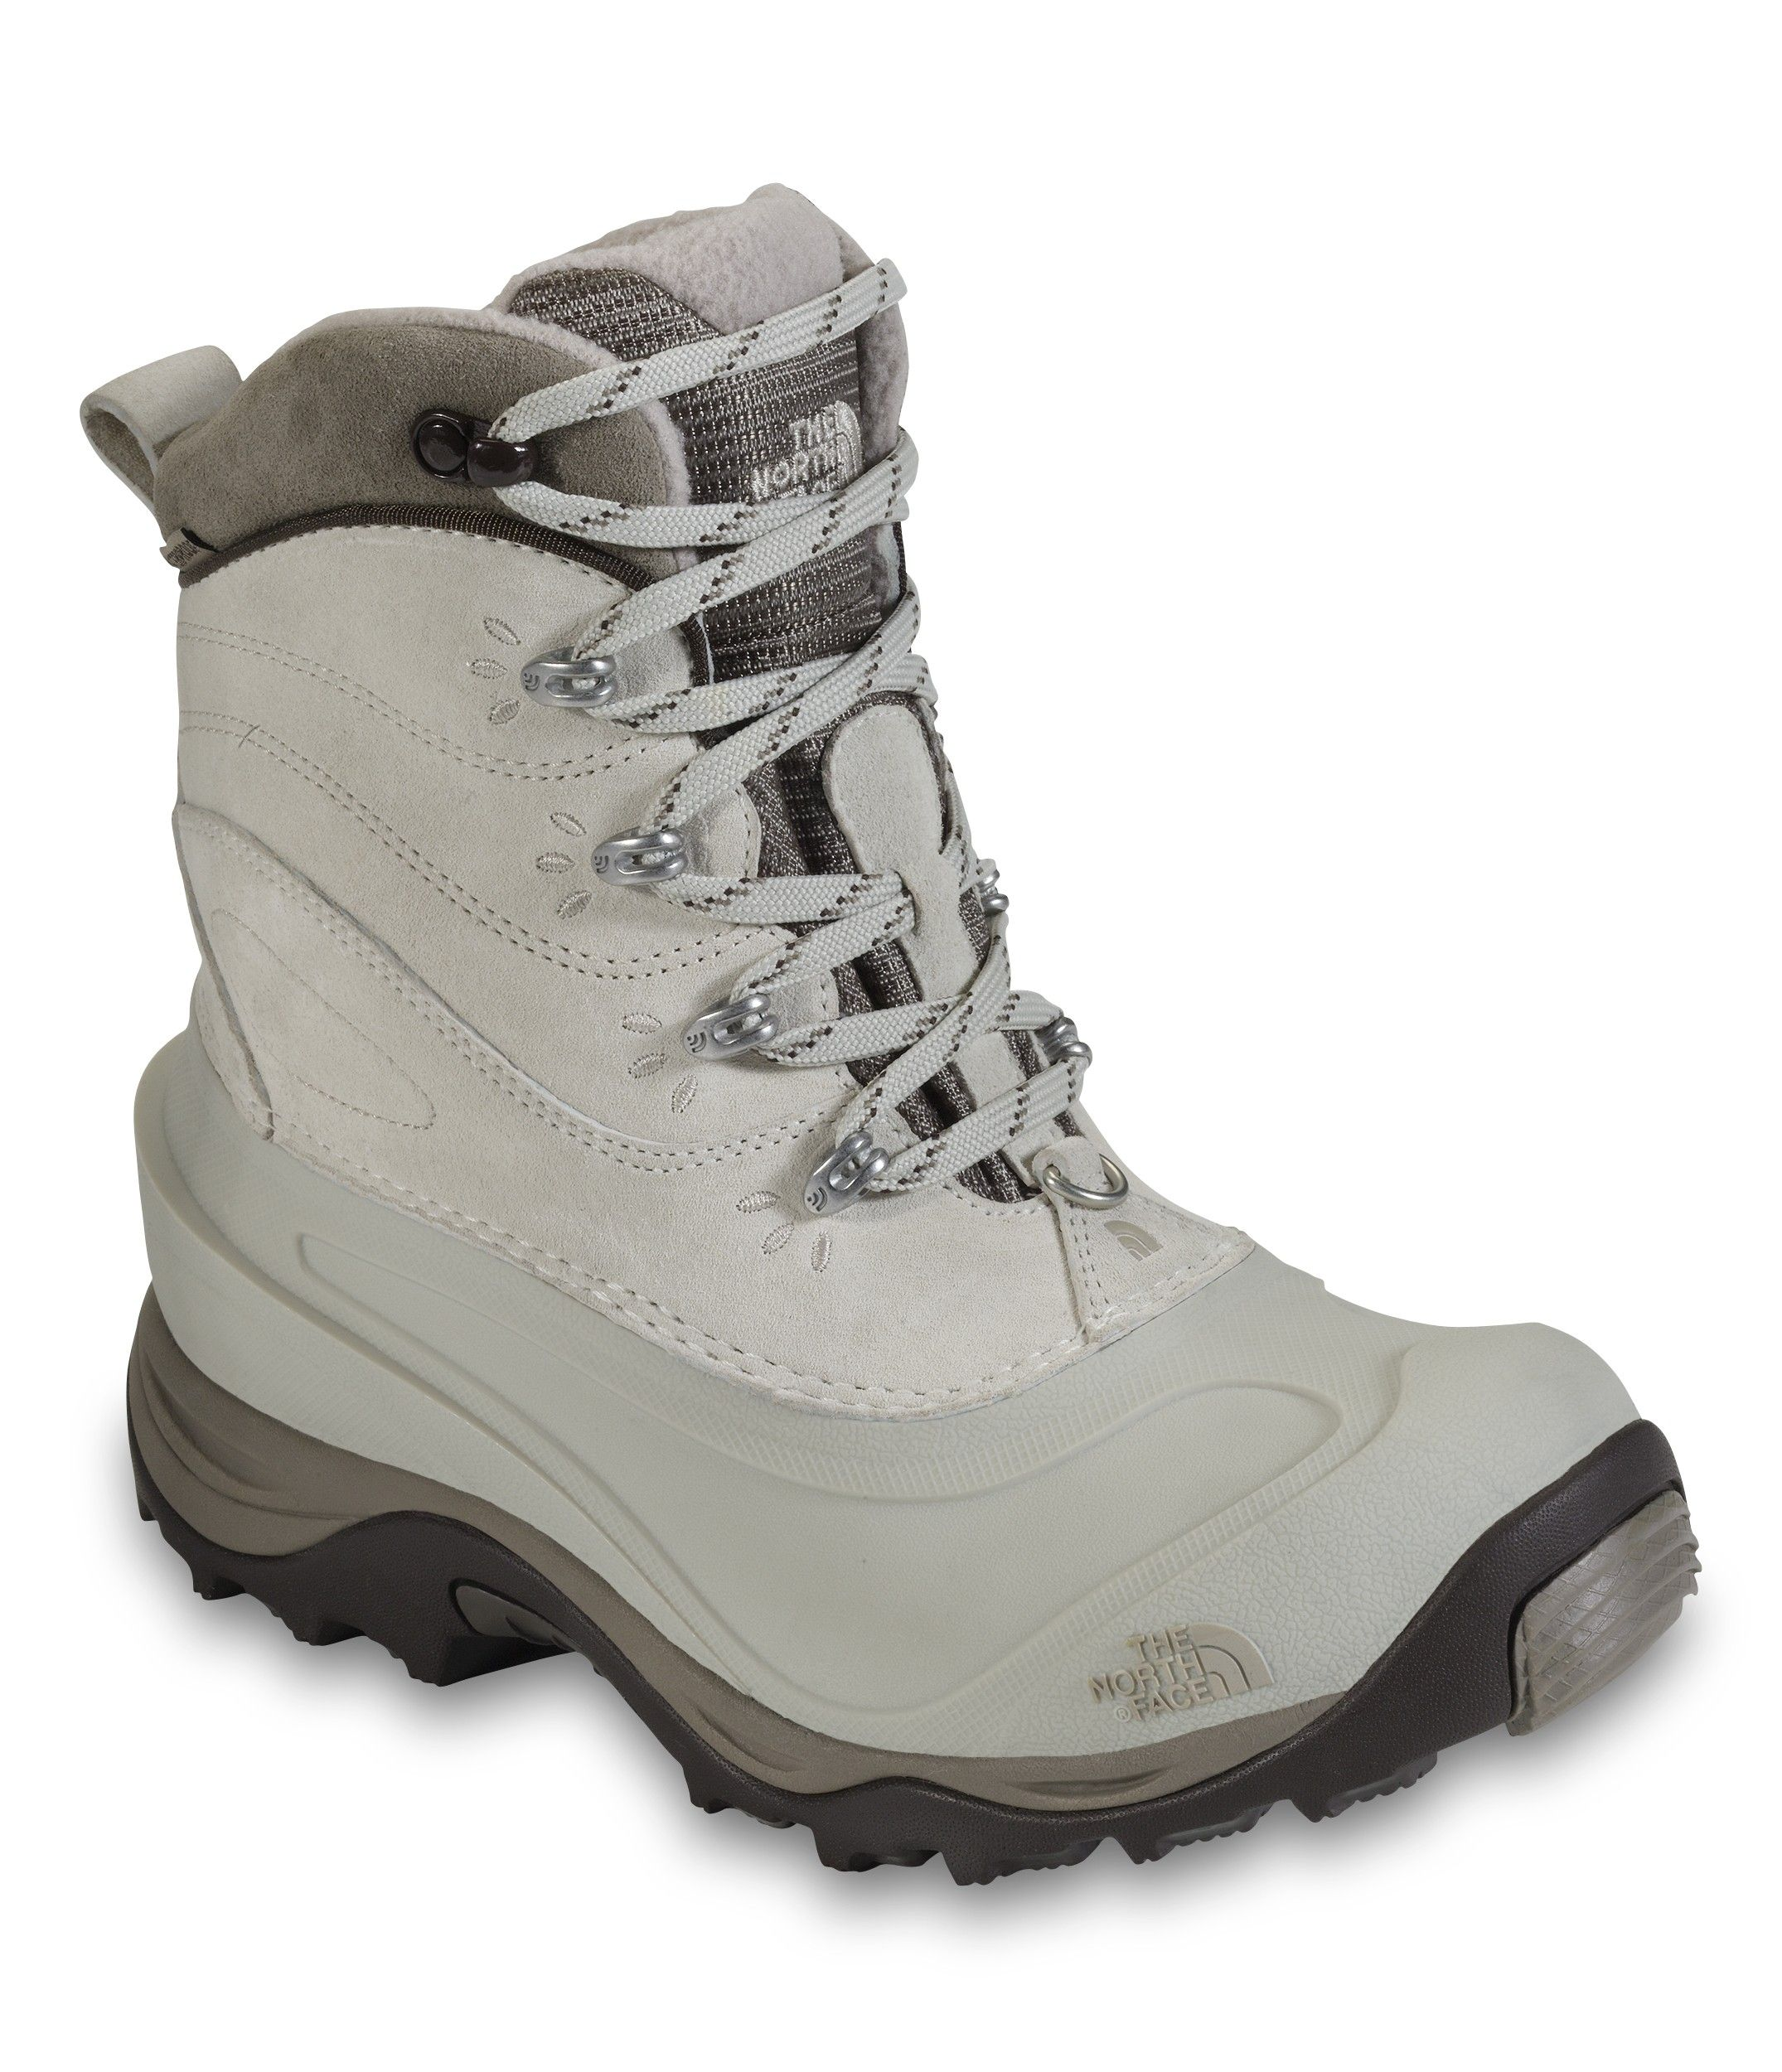 1a74dbc05 The North Face Women's Chilkat II Boot - Winter boots built to keep ...